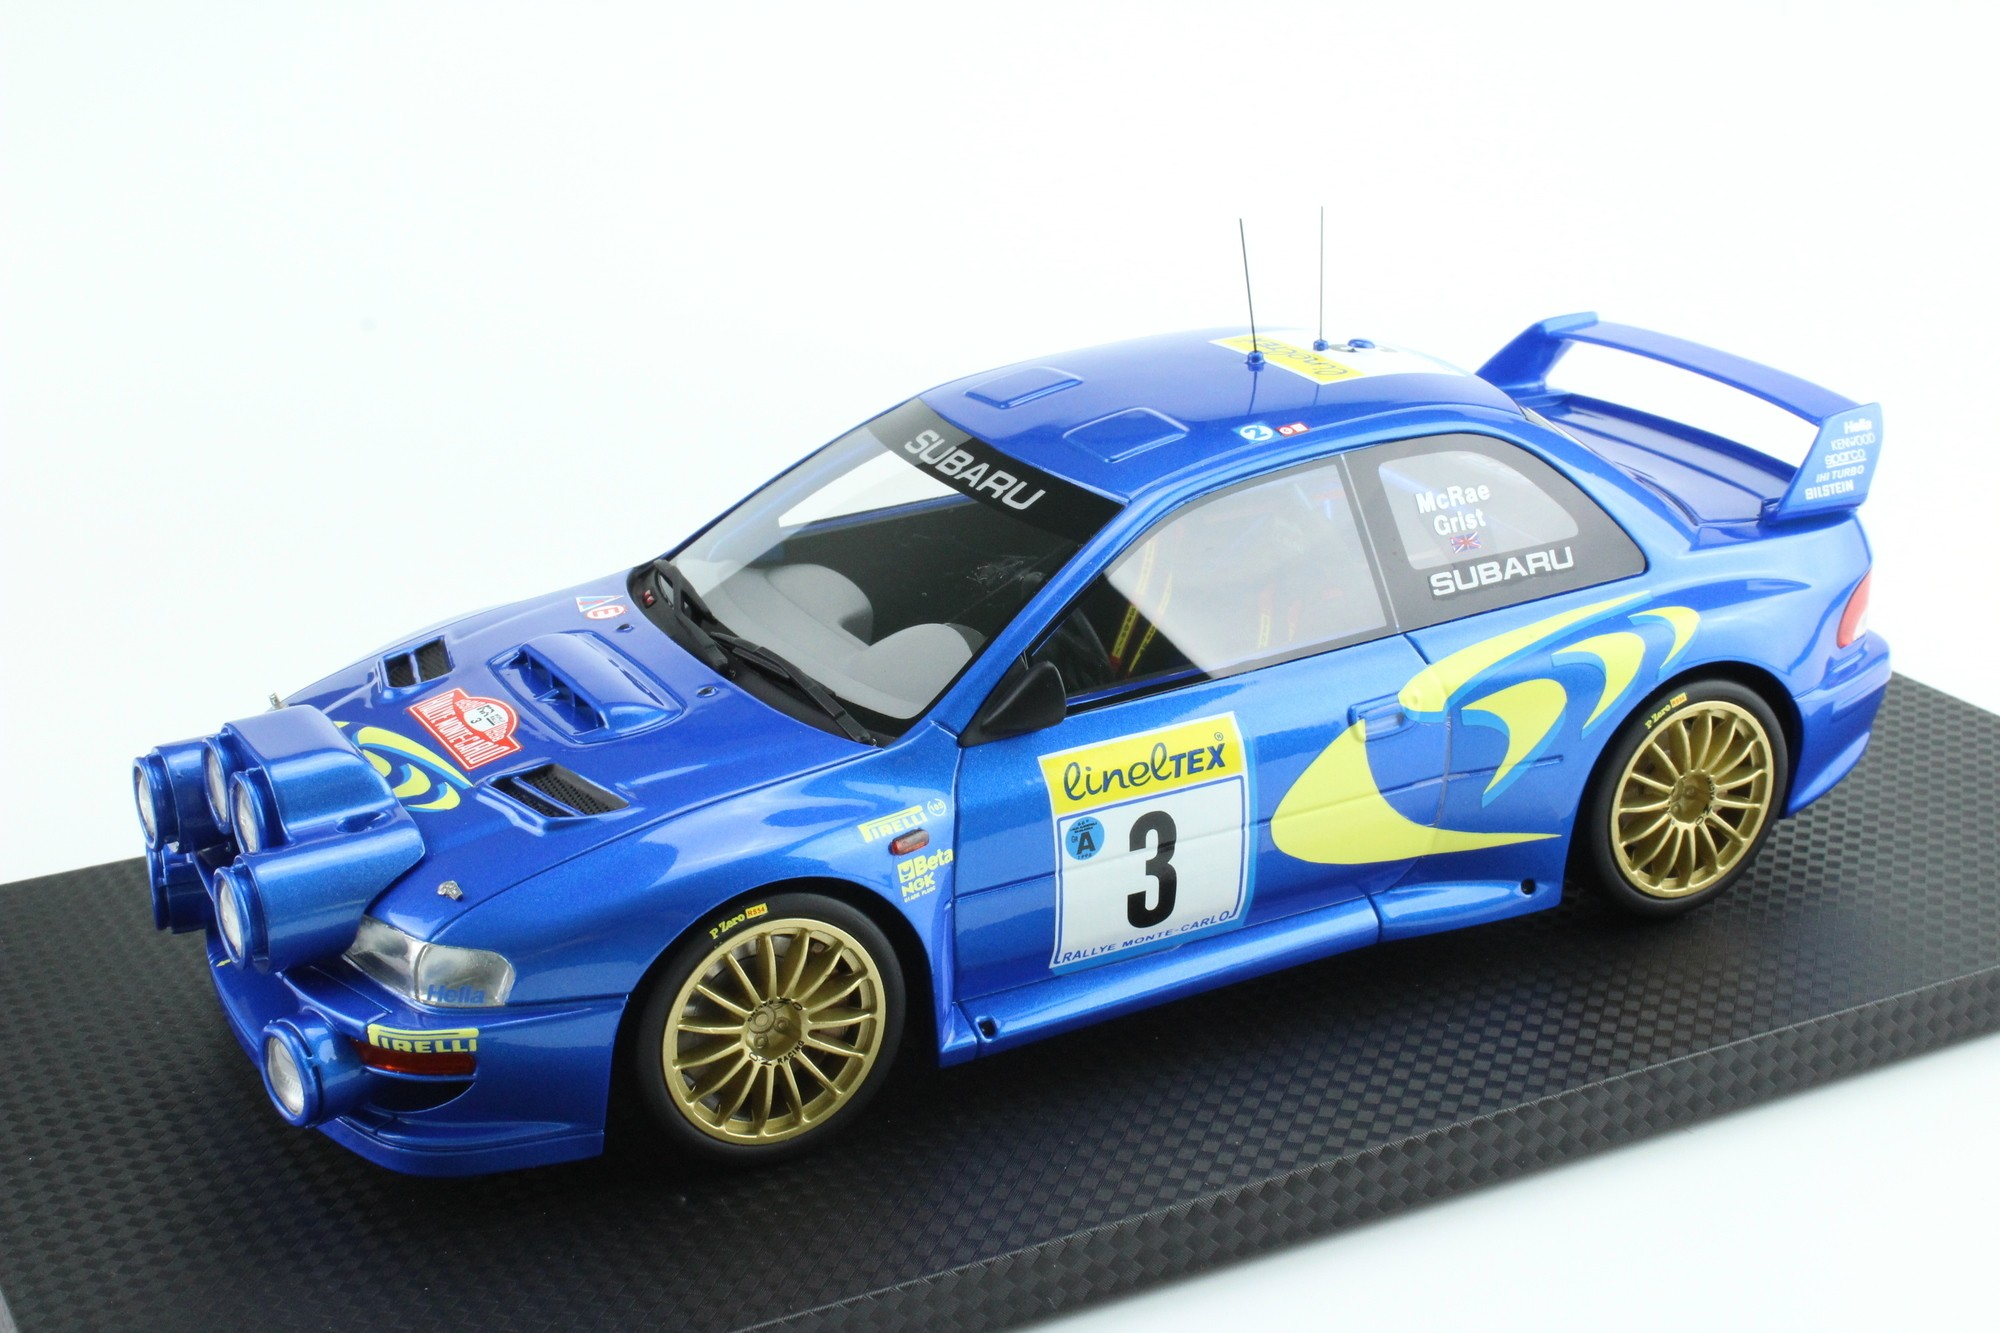 top marques collectibles subaru impreza s4 wrc mc rally 1998 colin mcrae nicky grist 1 18. Black Bedroom Furniture Sets. Home Design Ideas